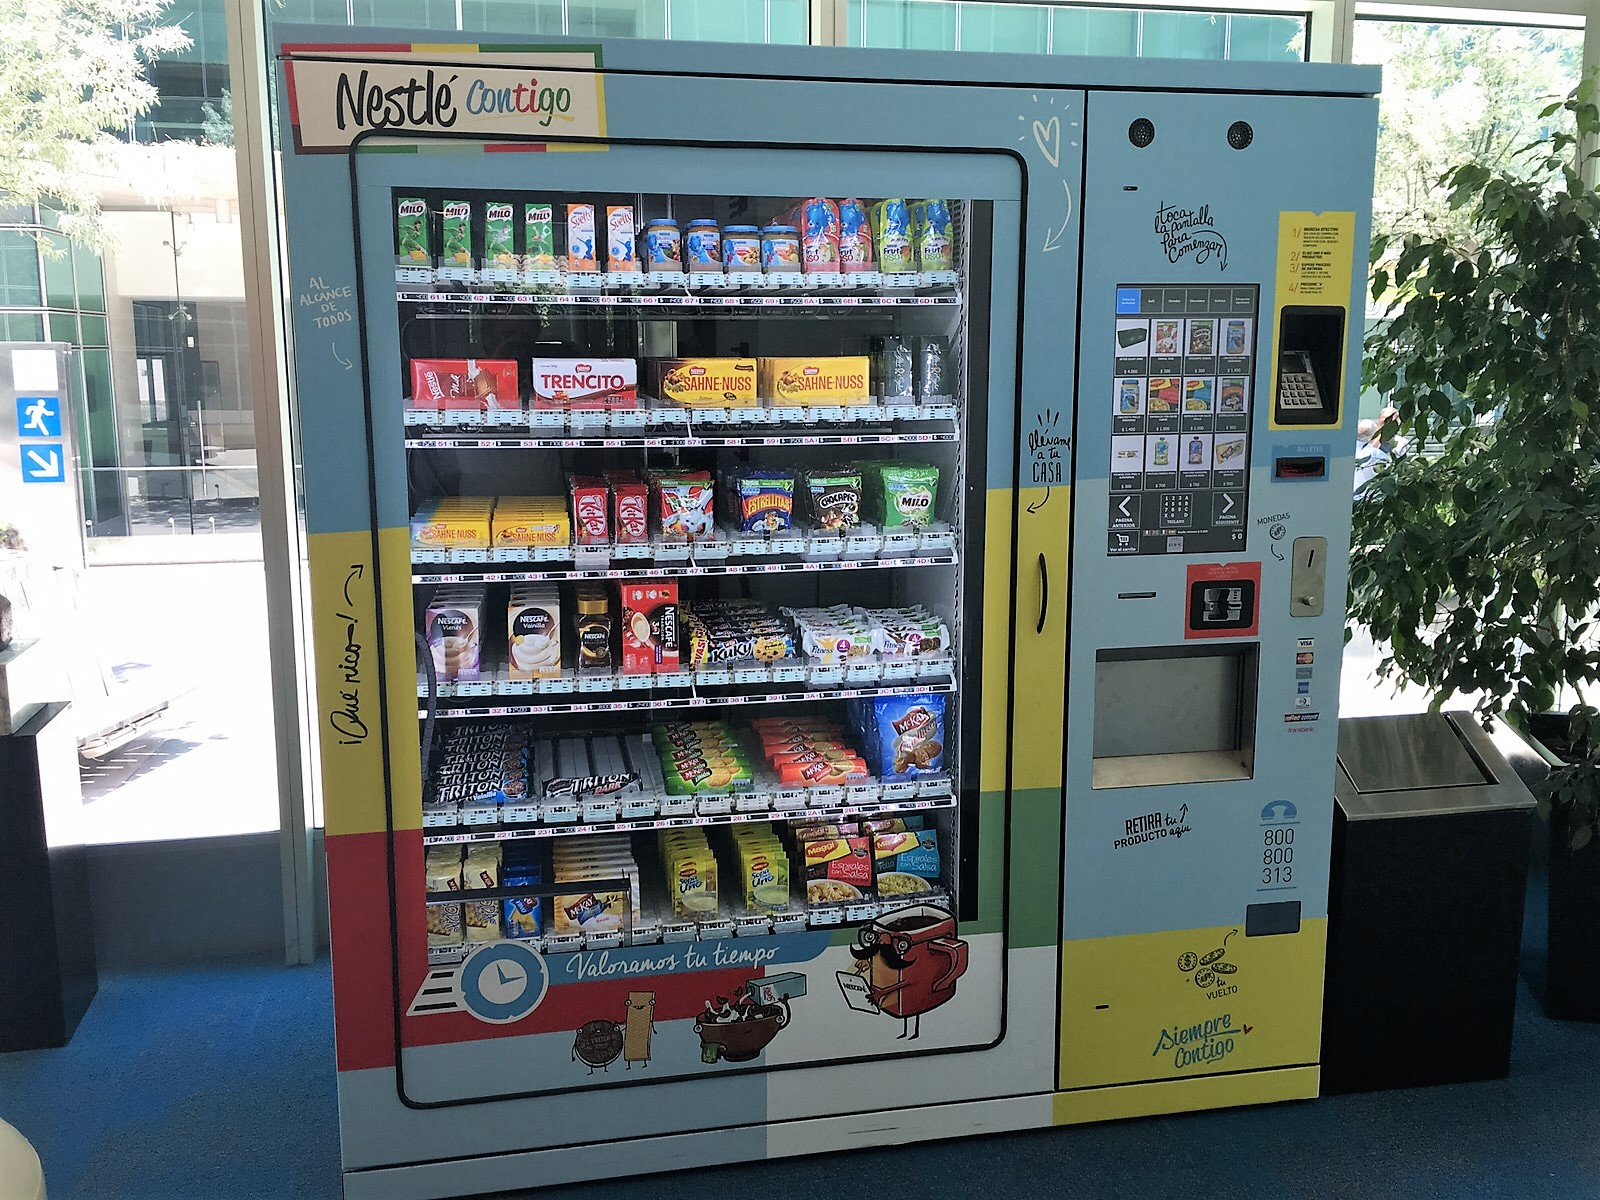 Alps Kiosks | Automated Retail Kiosk Company